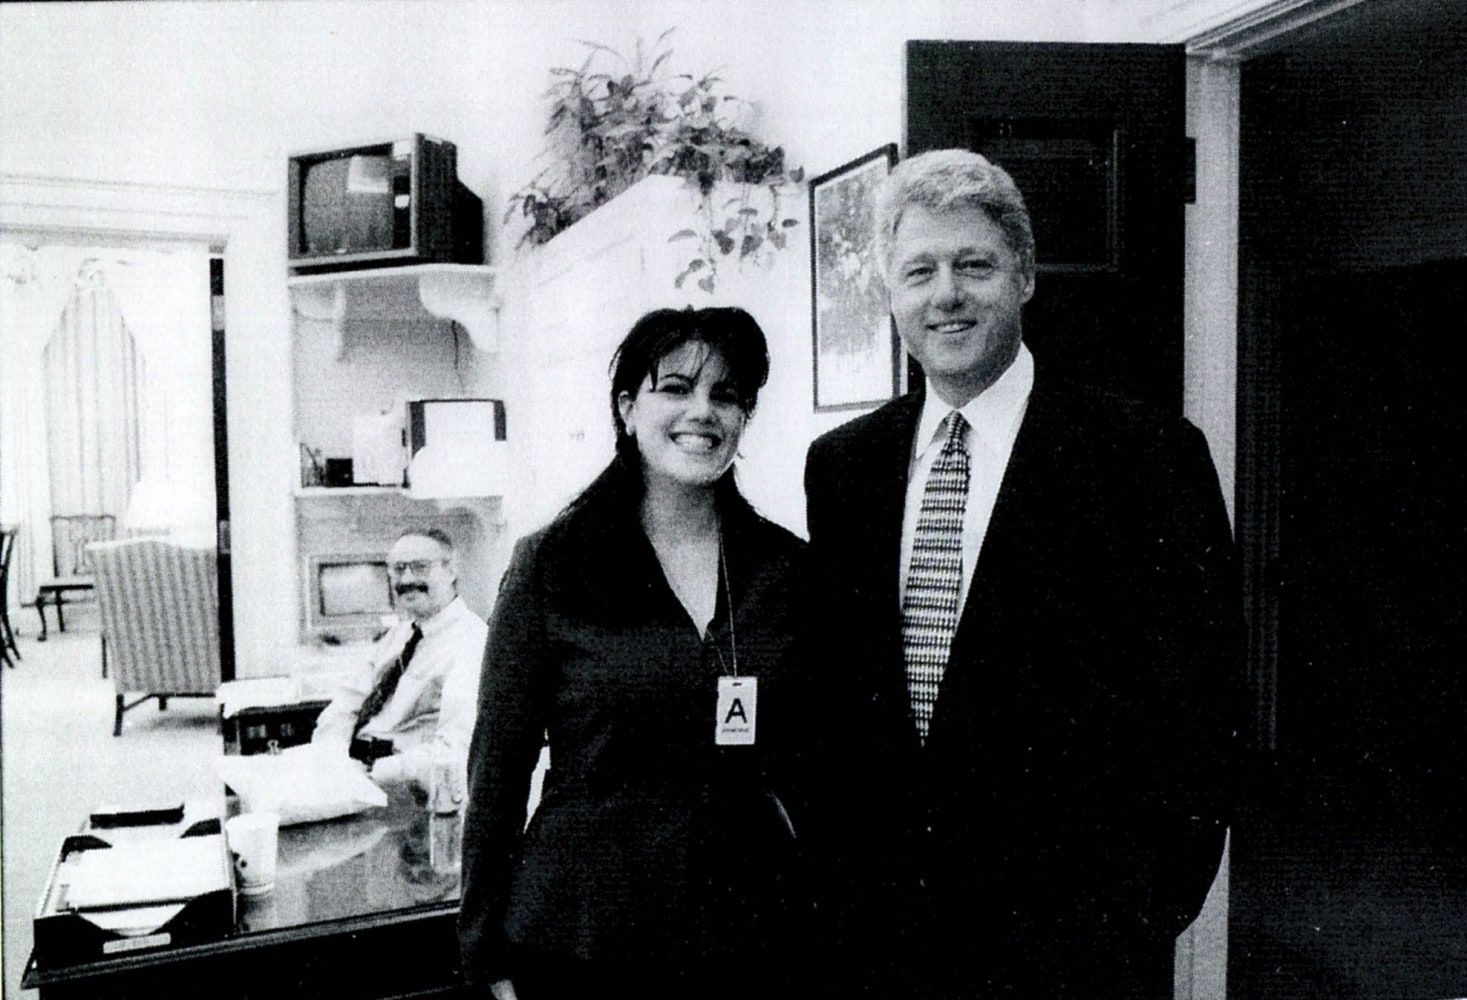 """lewinsky scandal Hln, sister network of cnn, is set to revisit the shocking affair that nearly toppled a presidency"""" with a two-part special on monica lewinsky and former president clinton """"the monica lewinsky scandal will run sunday at 9 pm as part of hln's true crime series, how it really happened,"""" with host hill."""